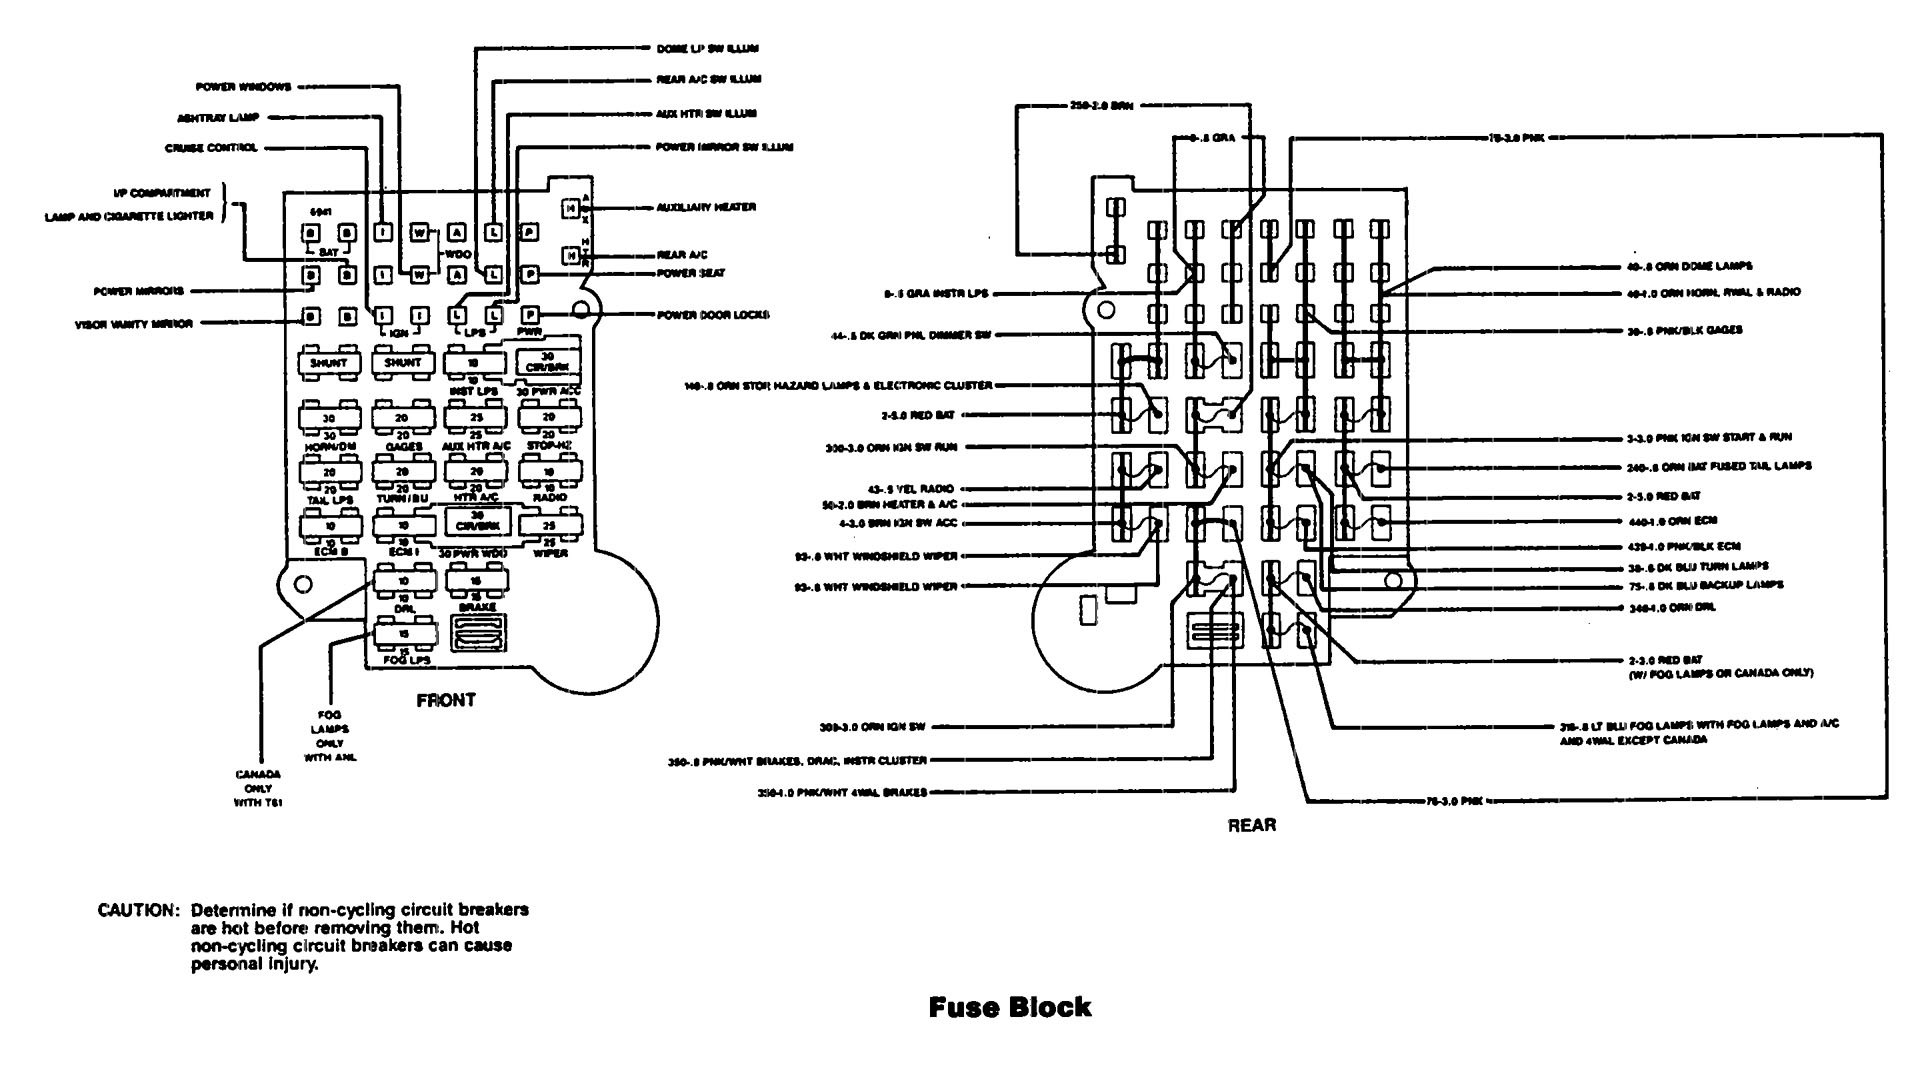 1969 c10 fuse box wiring diagram rheem diagrams 1990 chevy blazer engine imageresizertool com